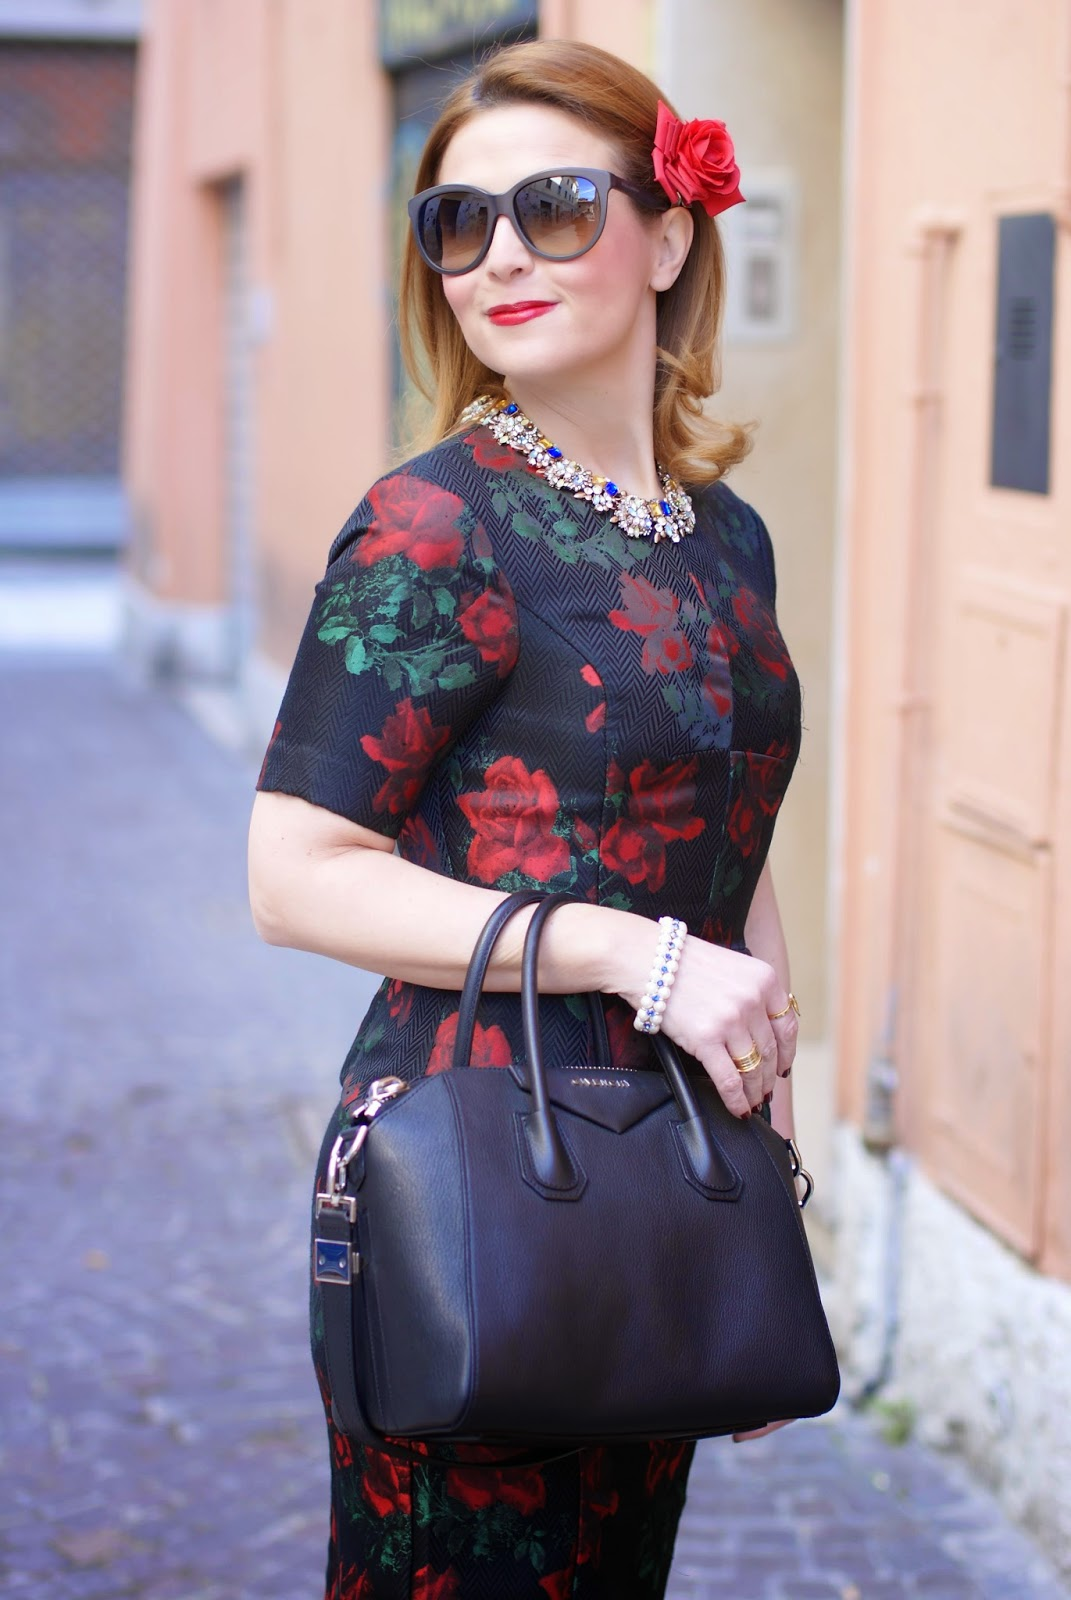 Asos rose print peplum dress in a 40s vintage style worn with tights and Givenchy Antigona bag and looking like a Dolce & Gabbana dress on Fashion and Cookies fashion blog